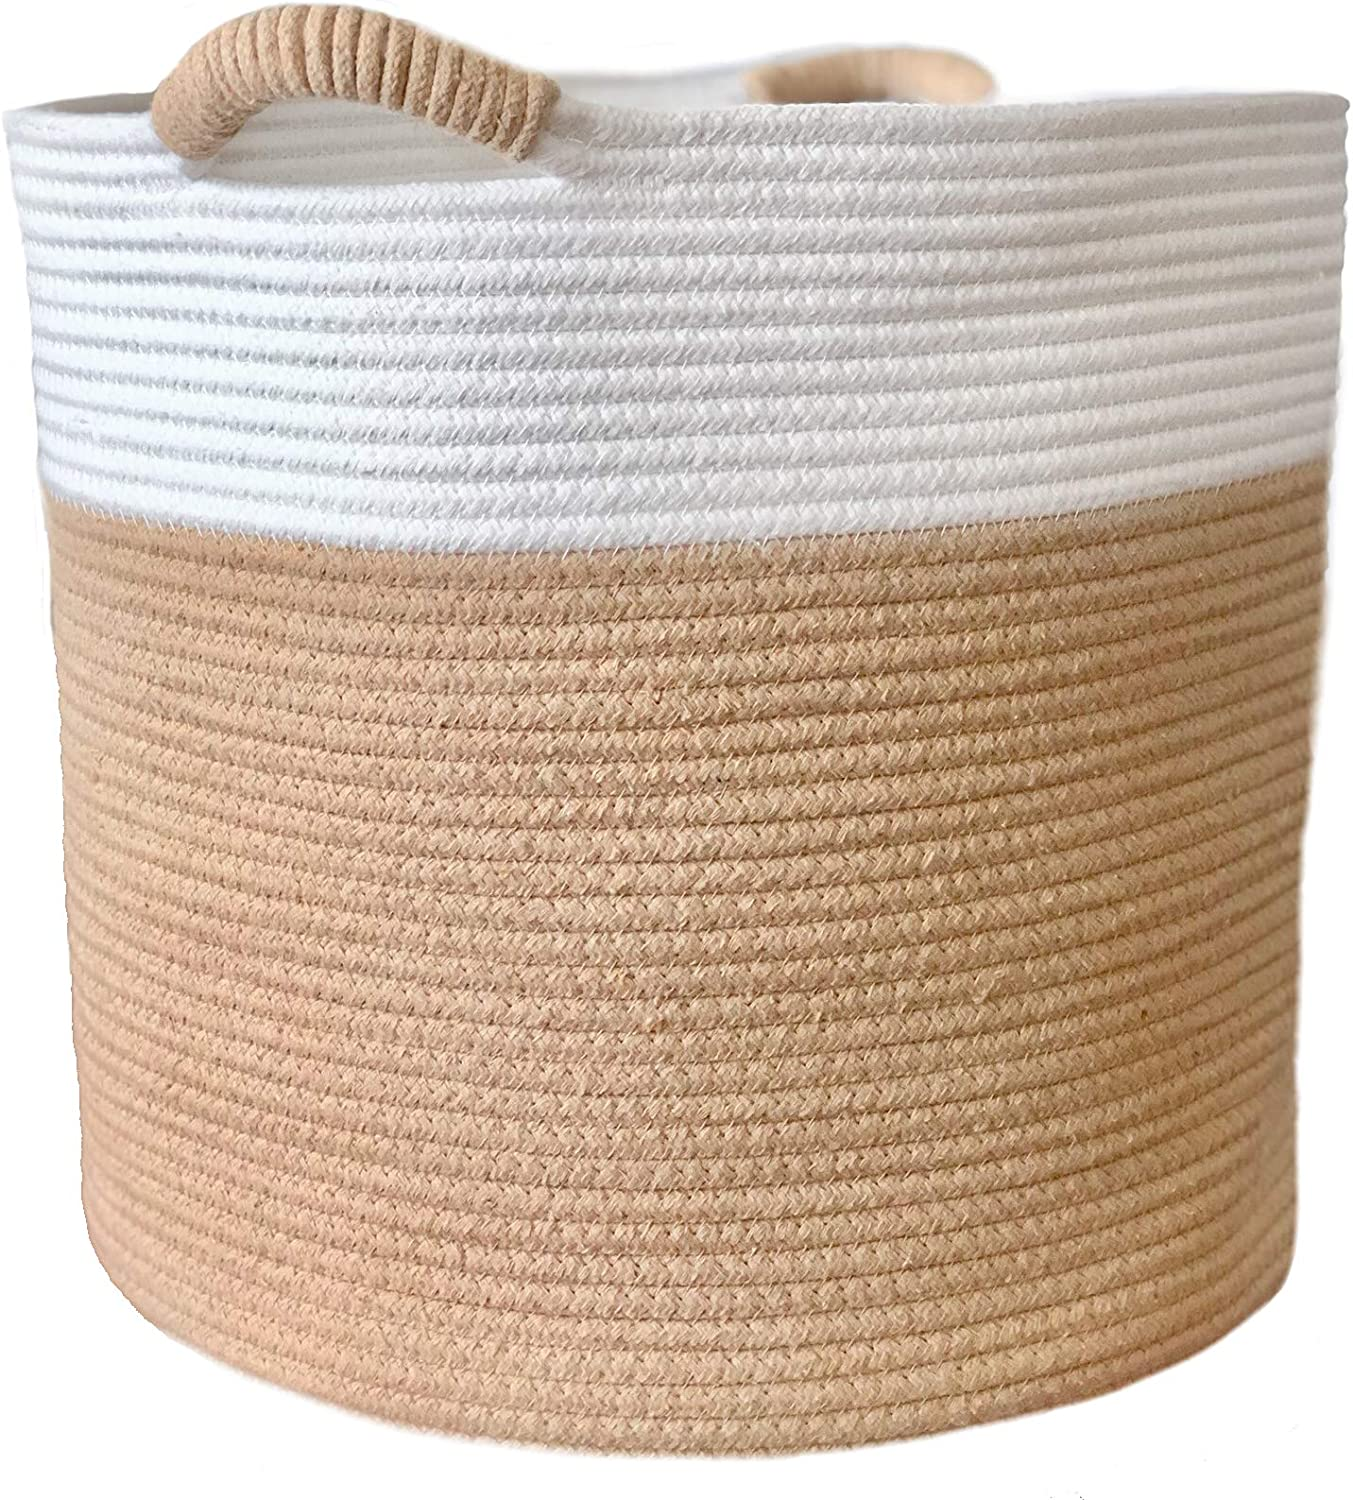 Cotton Rope Woven Storage Deluxe Basket Organic Large 15x15x14 NEW before selling Inches